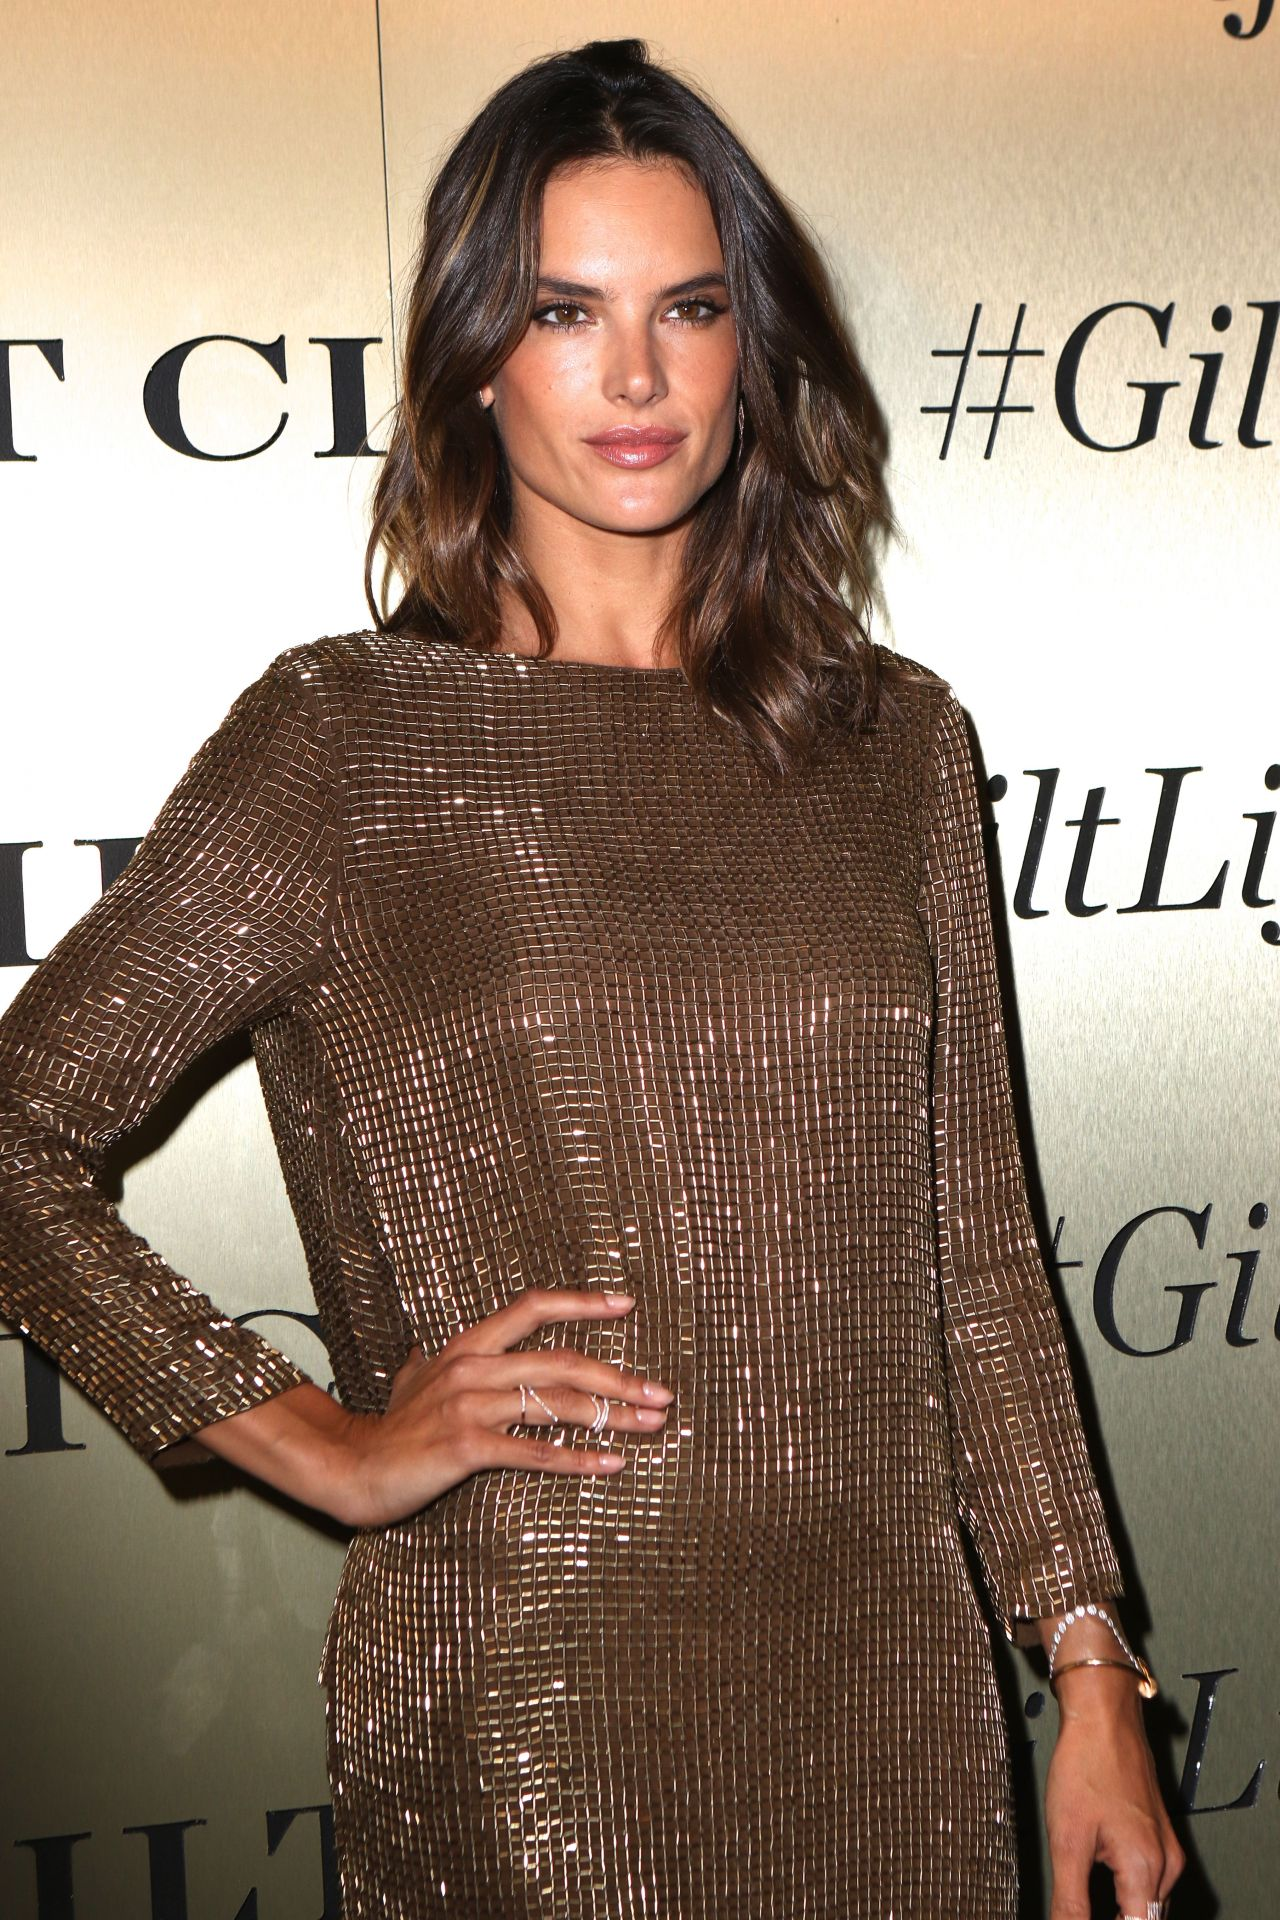 Alessandra Ambrosio - GiltLife Launch Party Event in New ... Alessandra Ambrosio